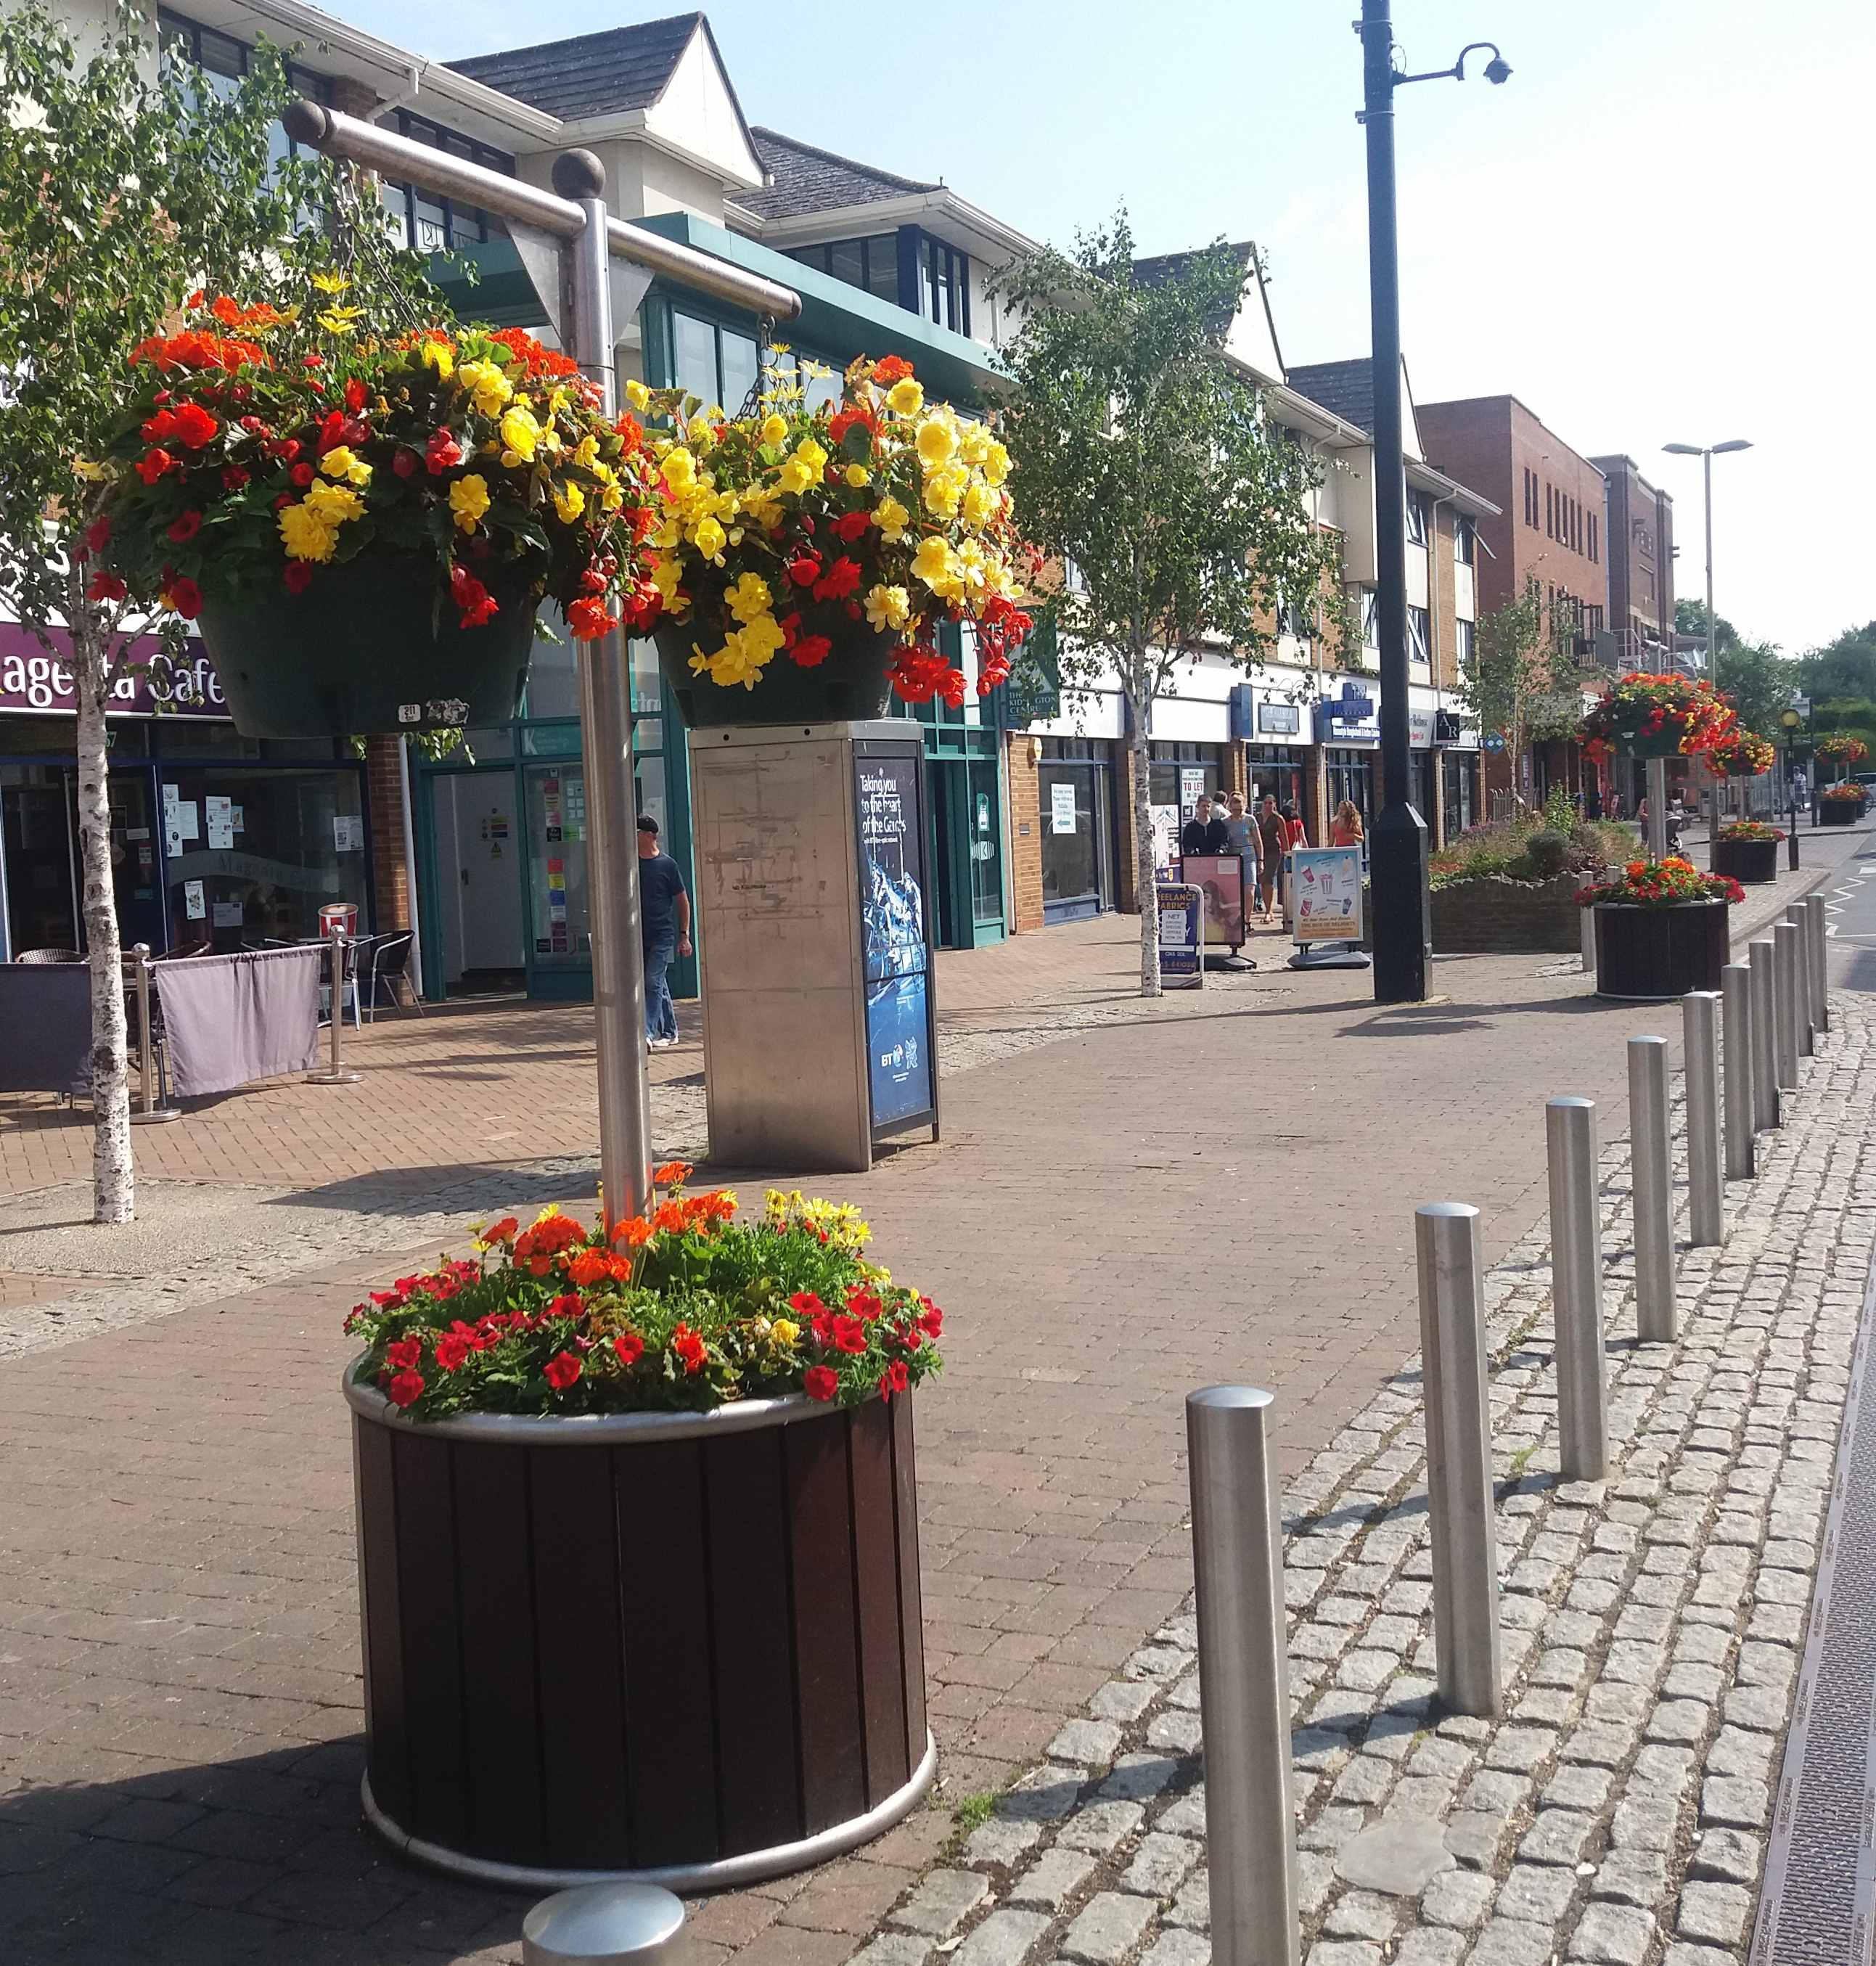 highstreet with yellow and red flowers 2